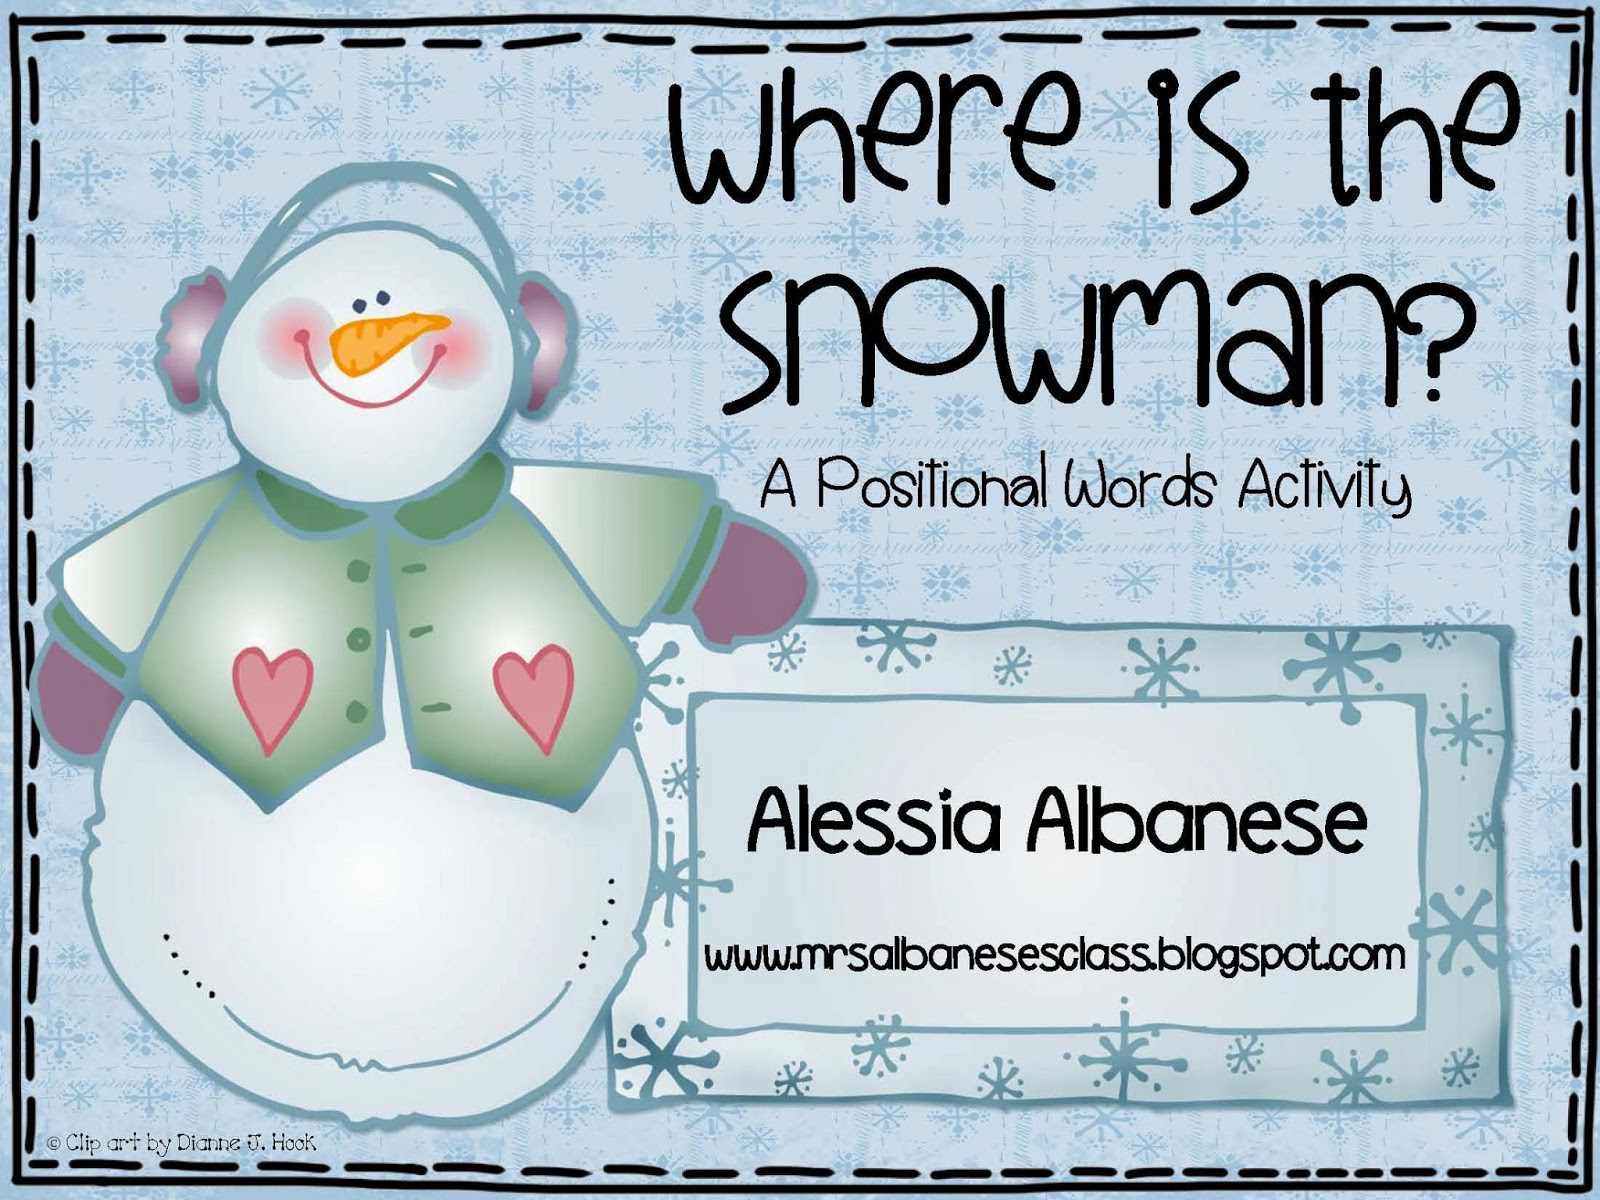 http://www.mrsalbanesesclass.blogspot.ca/2014/02/where-is-snowman-freebie.html